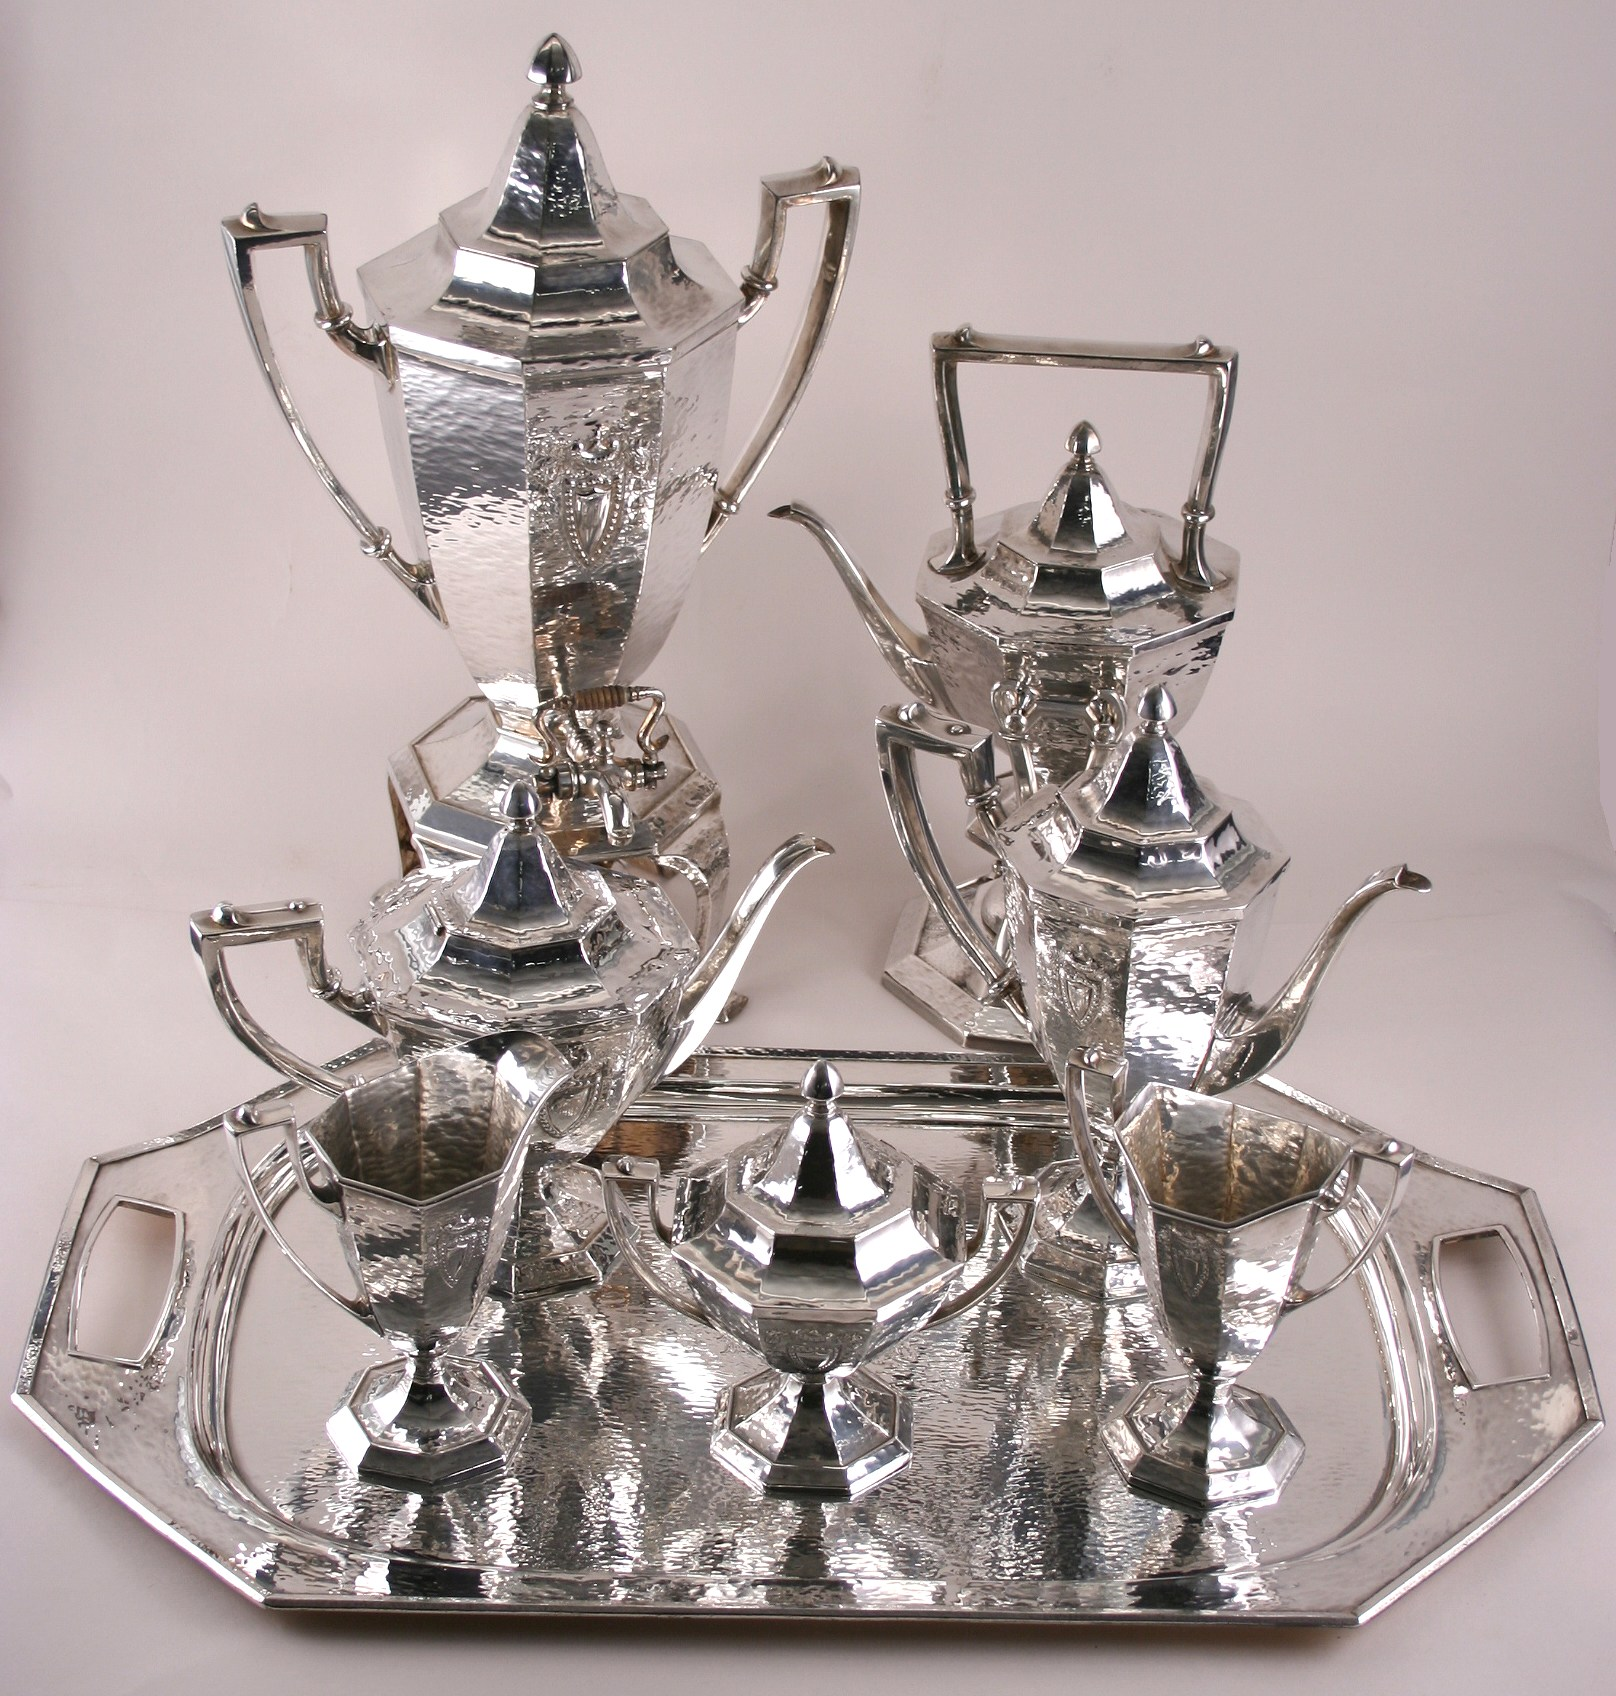 Antique Sterling Silver Art Deco Sheffield Tea Service with Tray